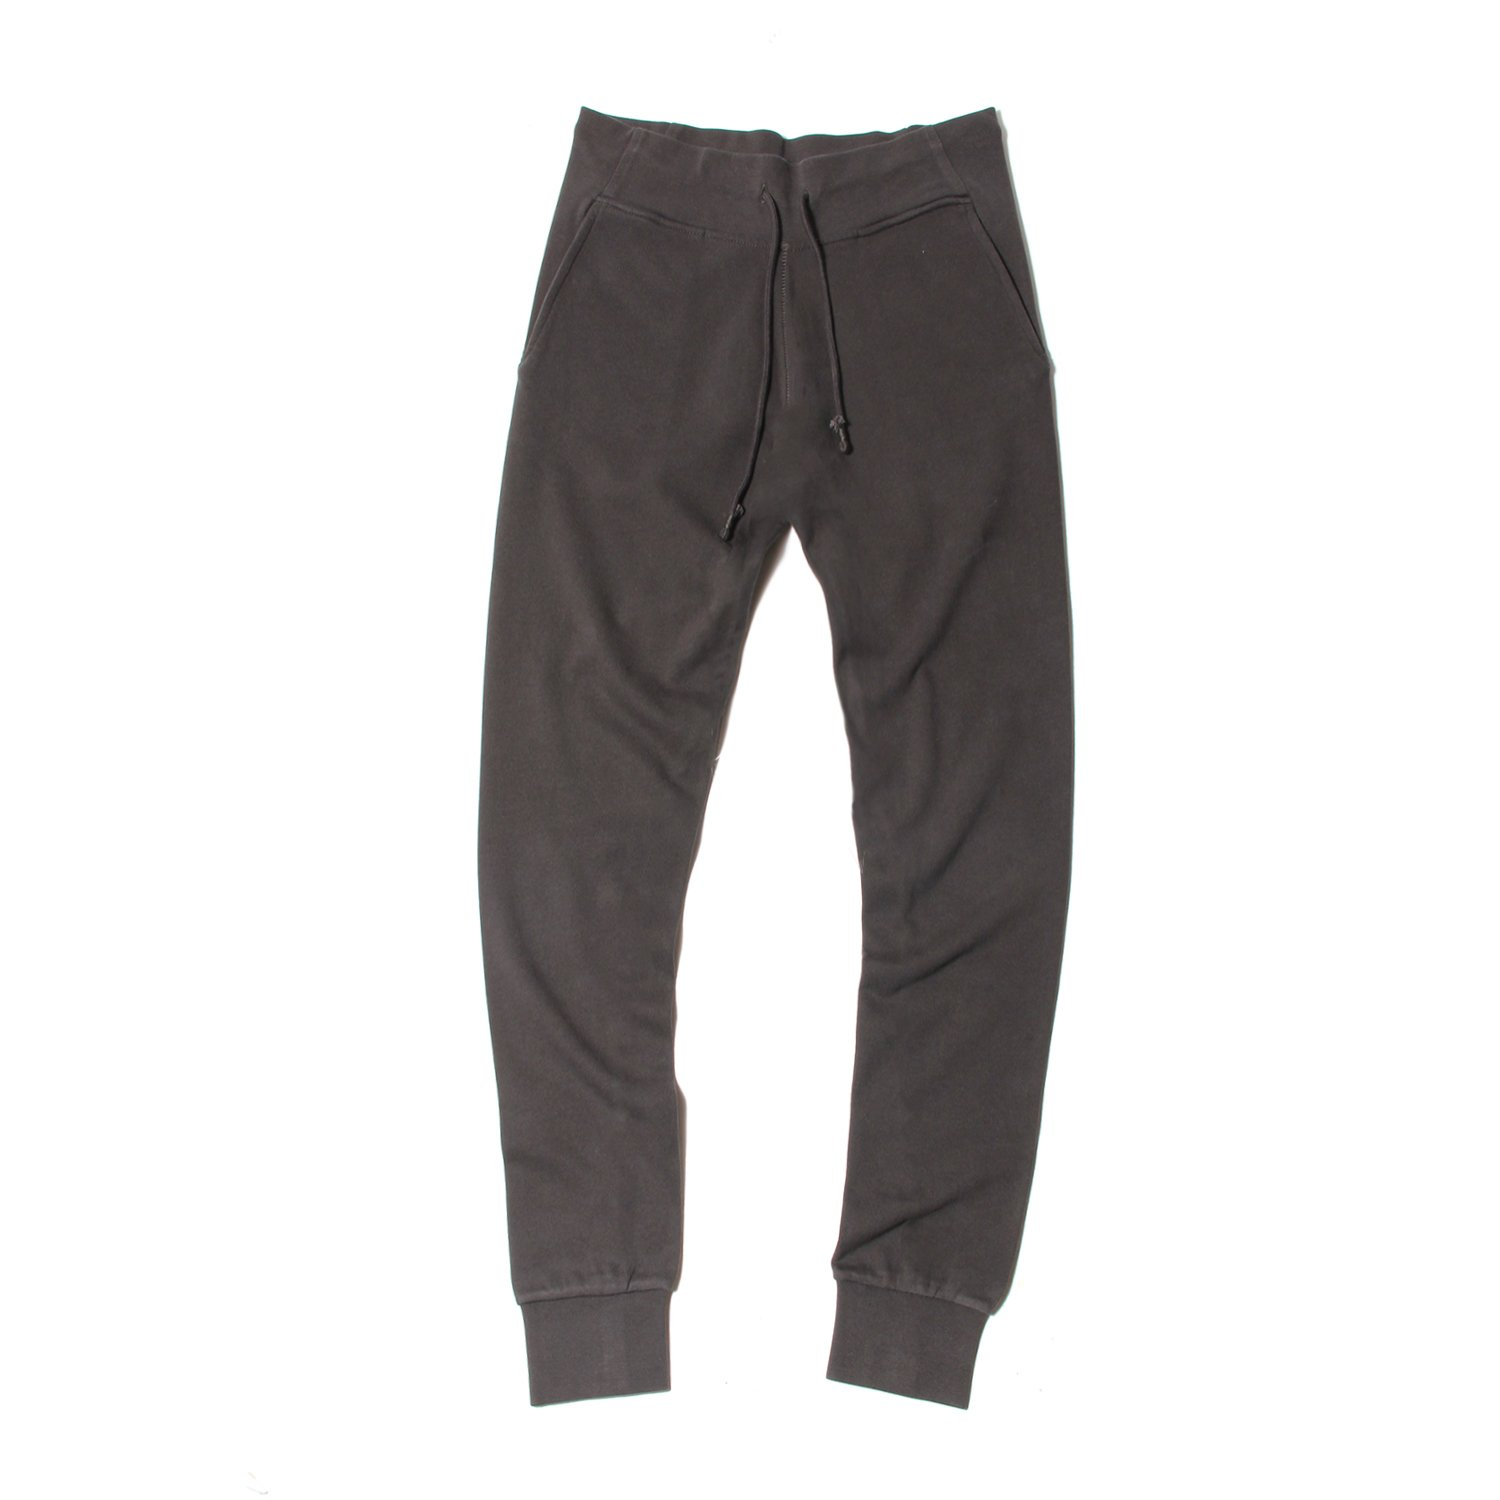 Loomstate 100% GOTS Organic Cotton Women's Ethical Joggers